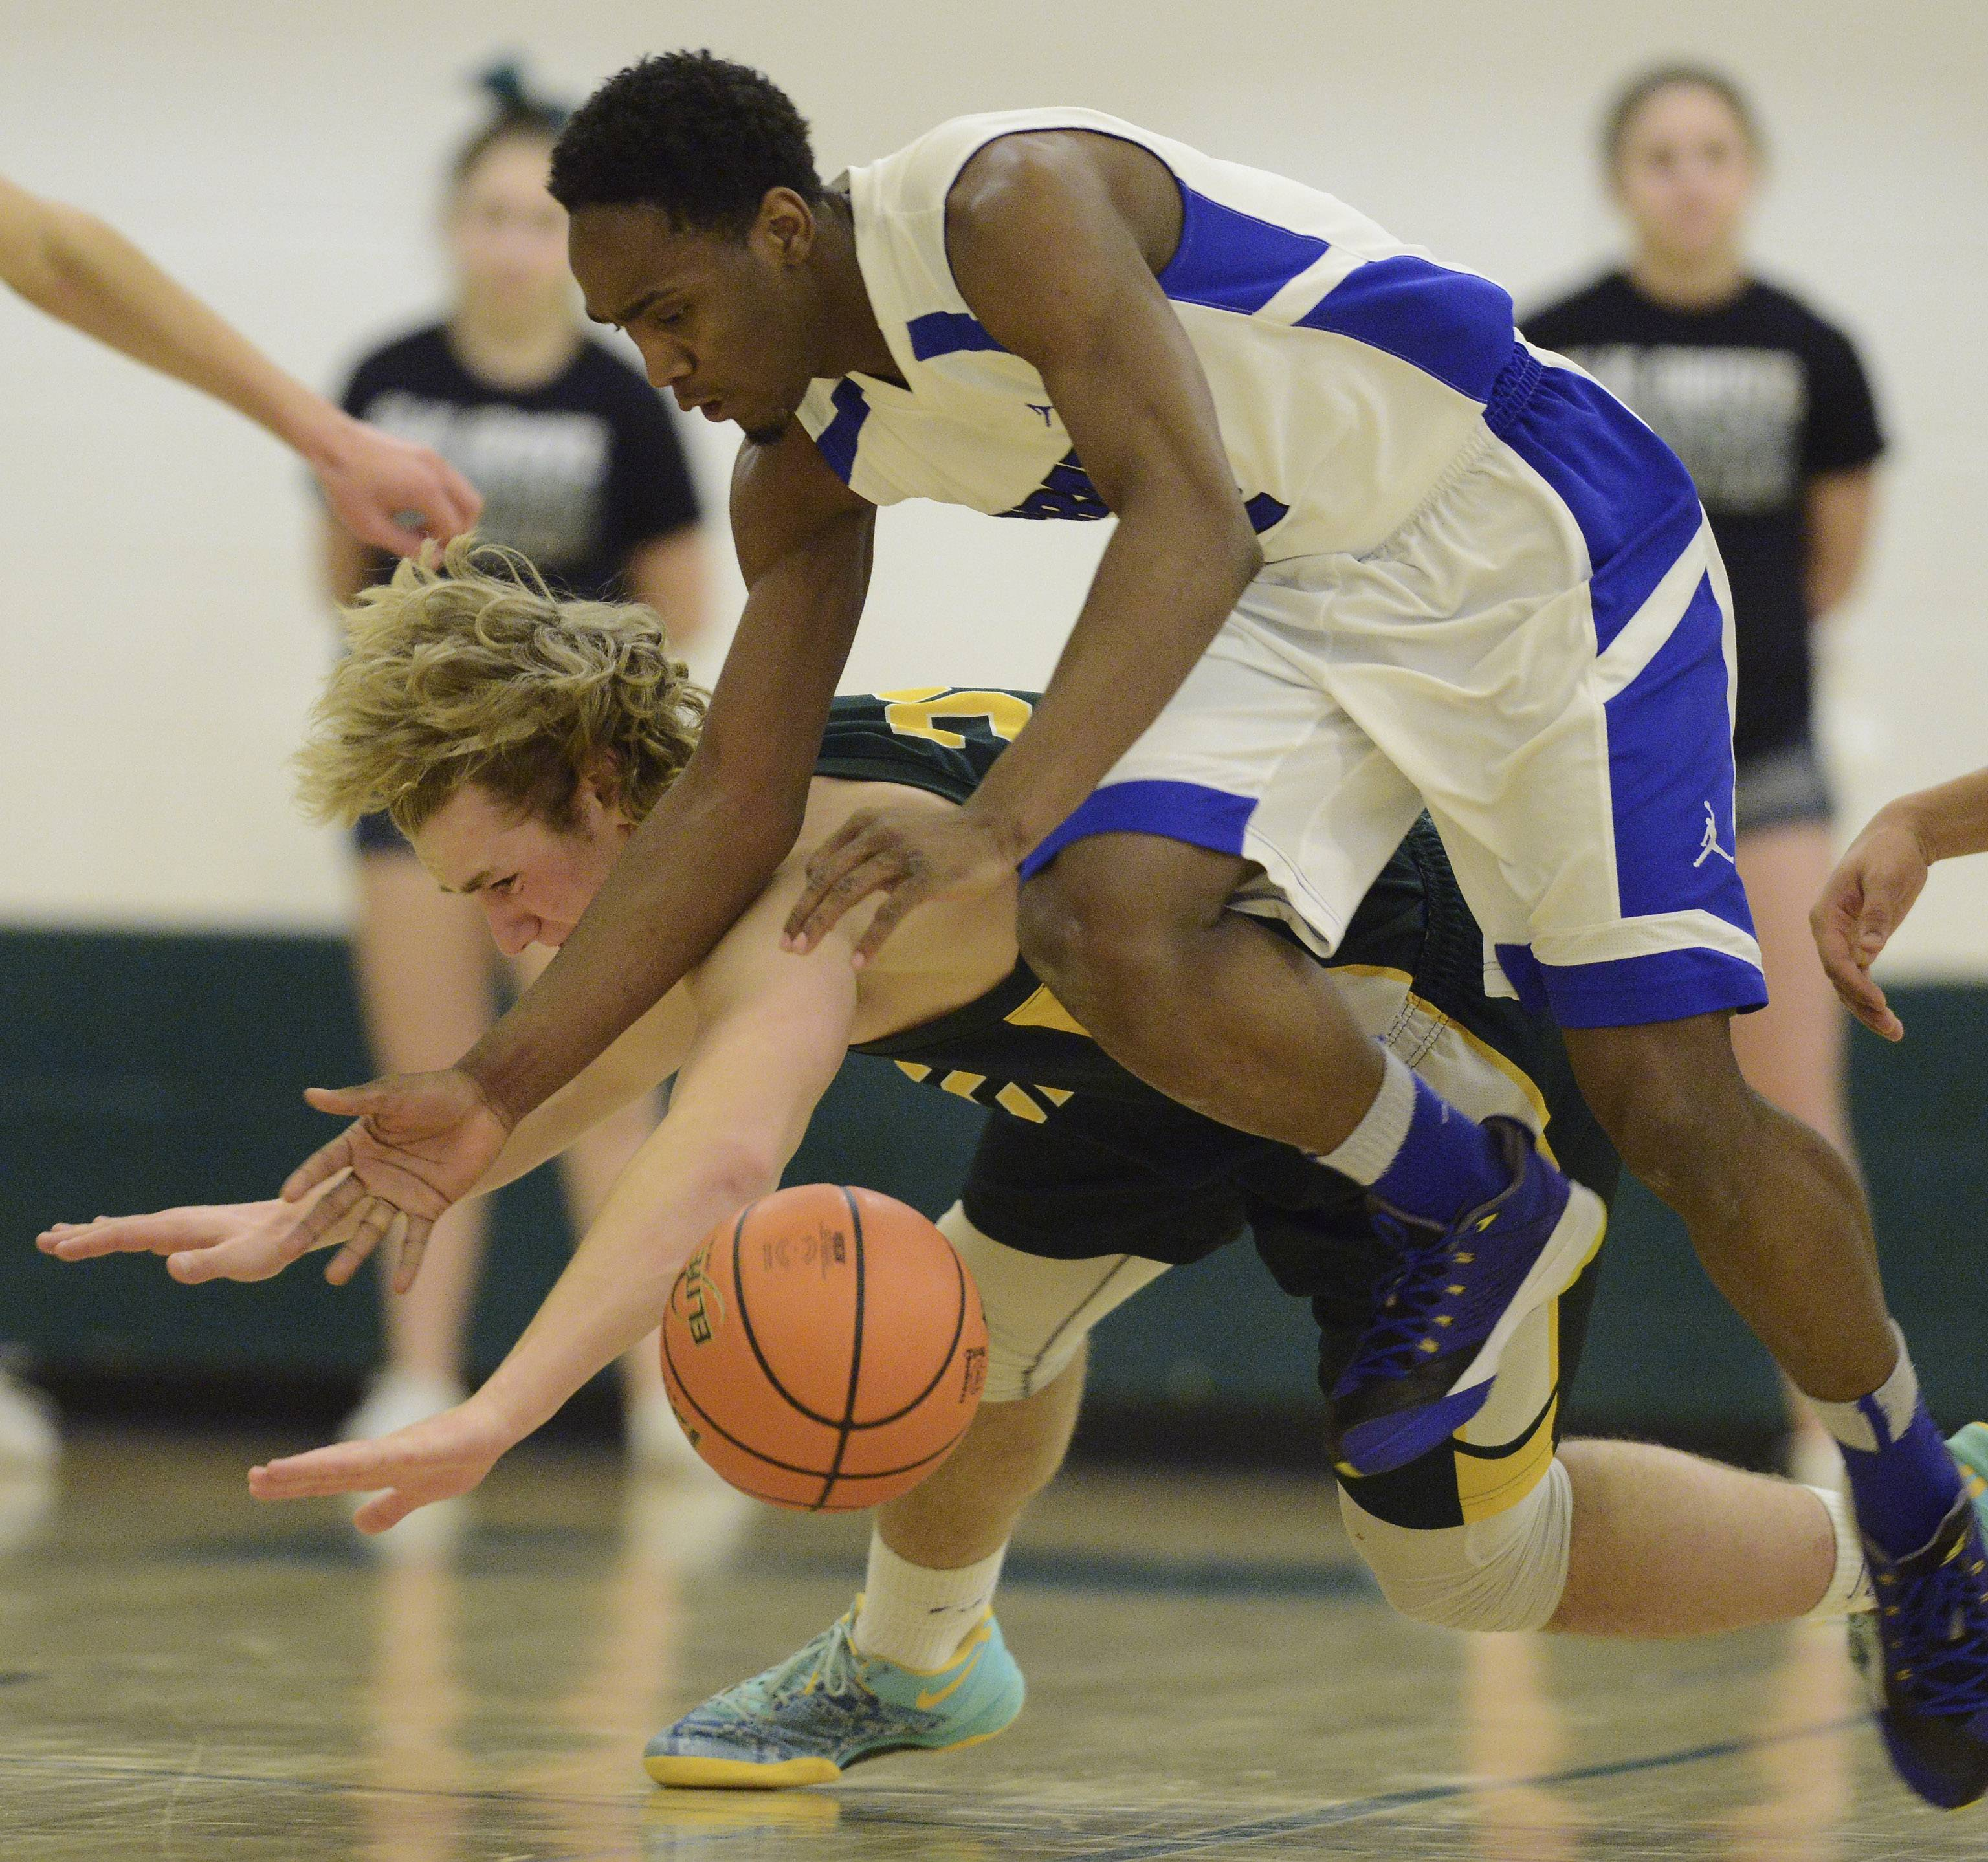 Elk Grove's Adam O'Malley, left, and Proviso East's Alano Span make contact while trying to control a loose ball .